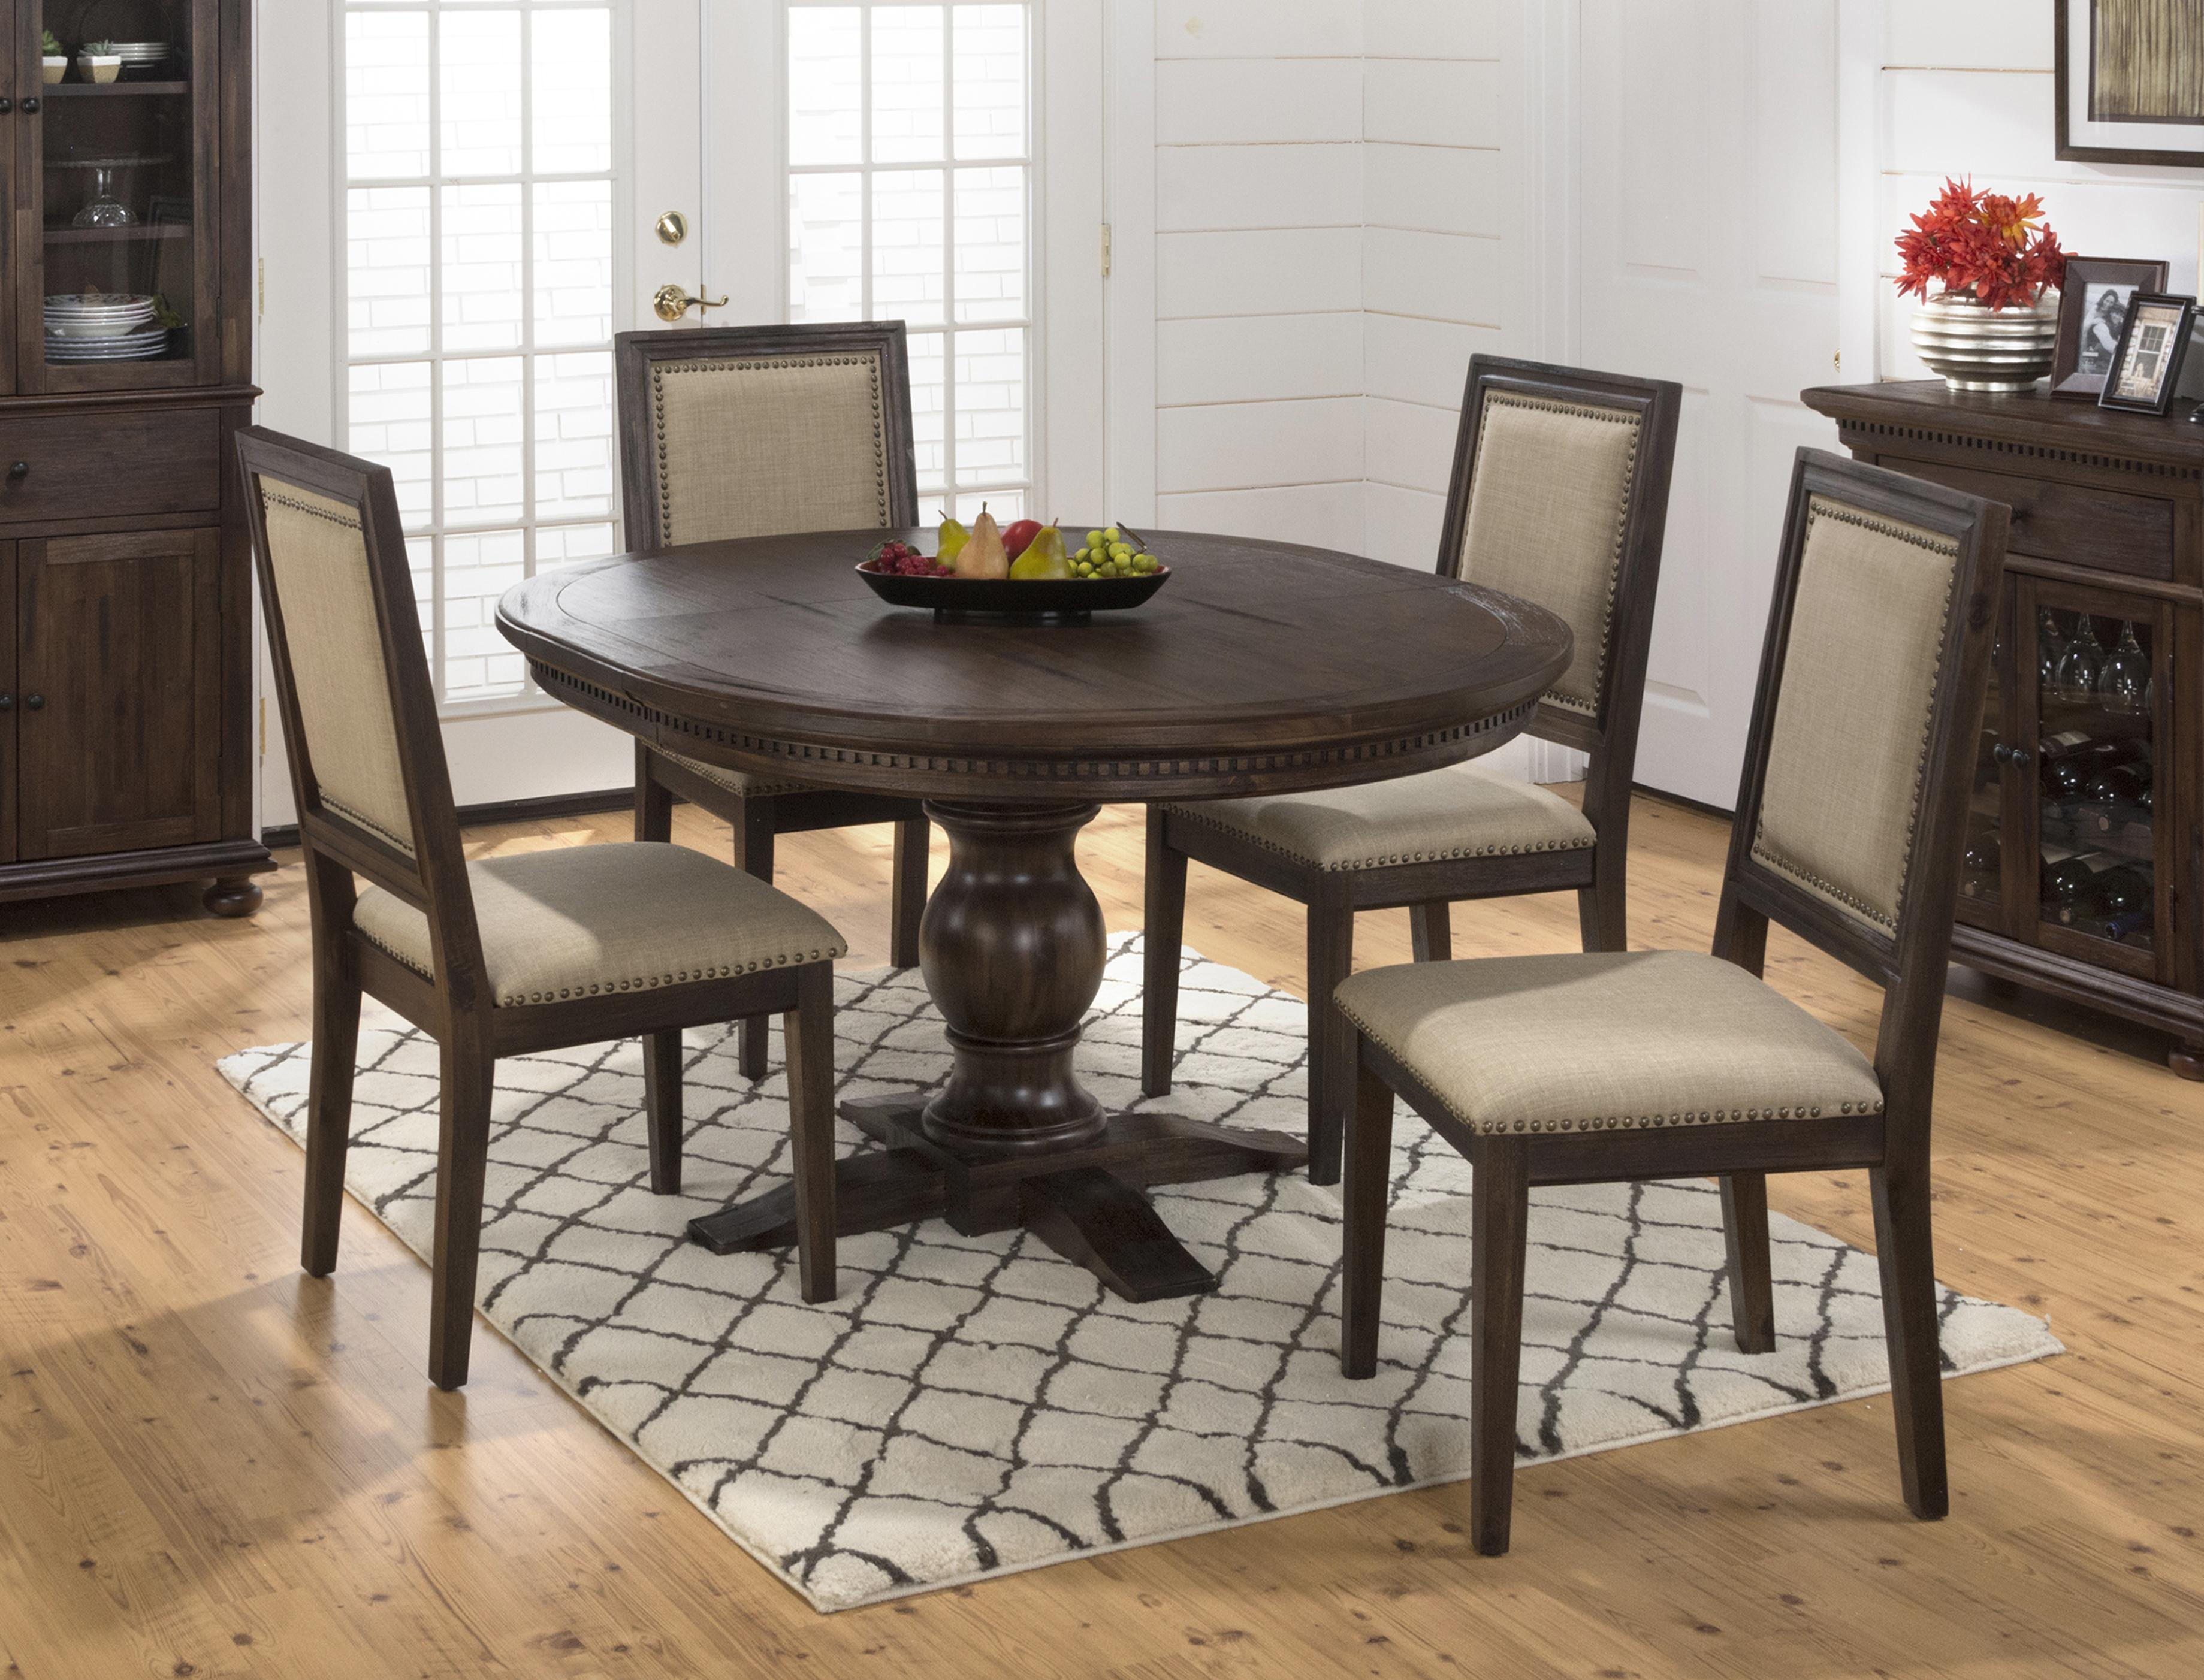 Round Dining Room Table and Chair Sets – layjao